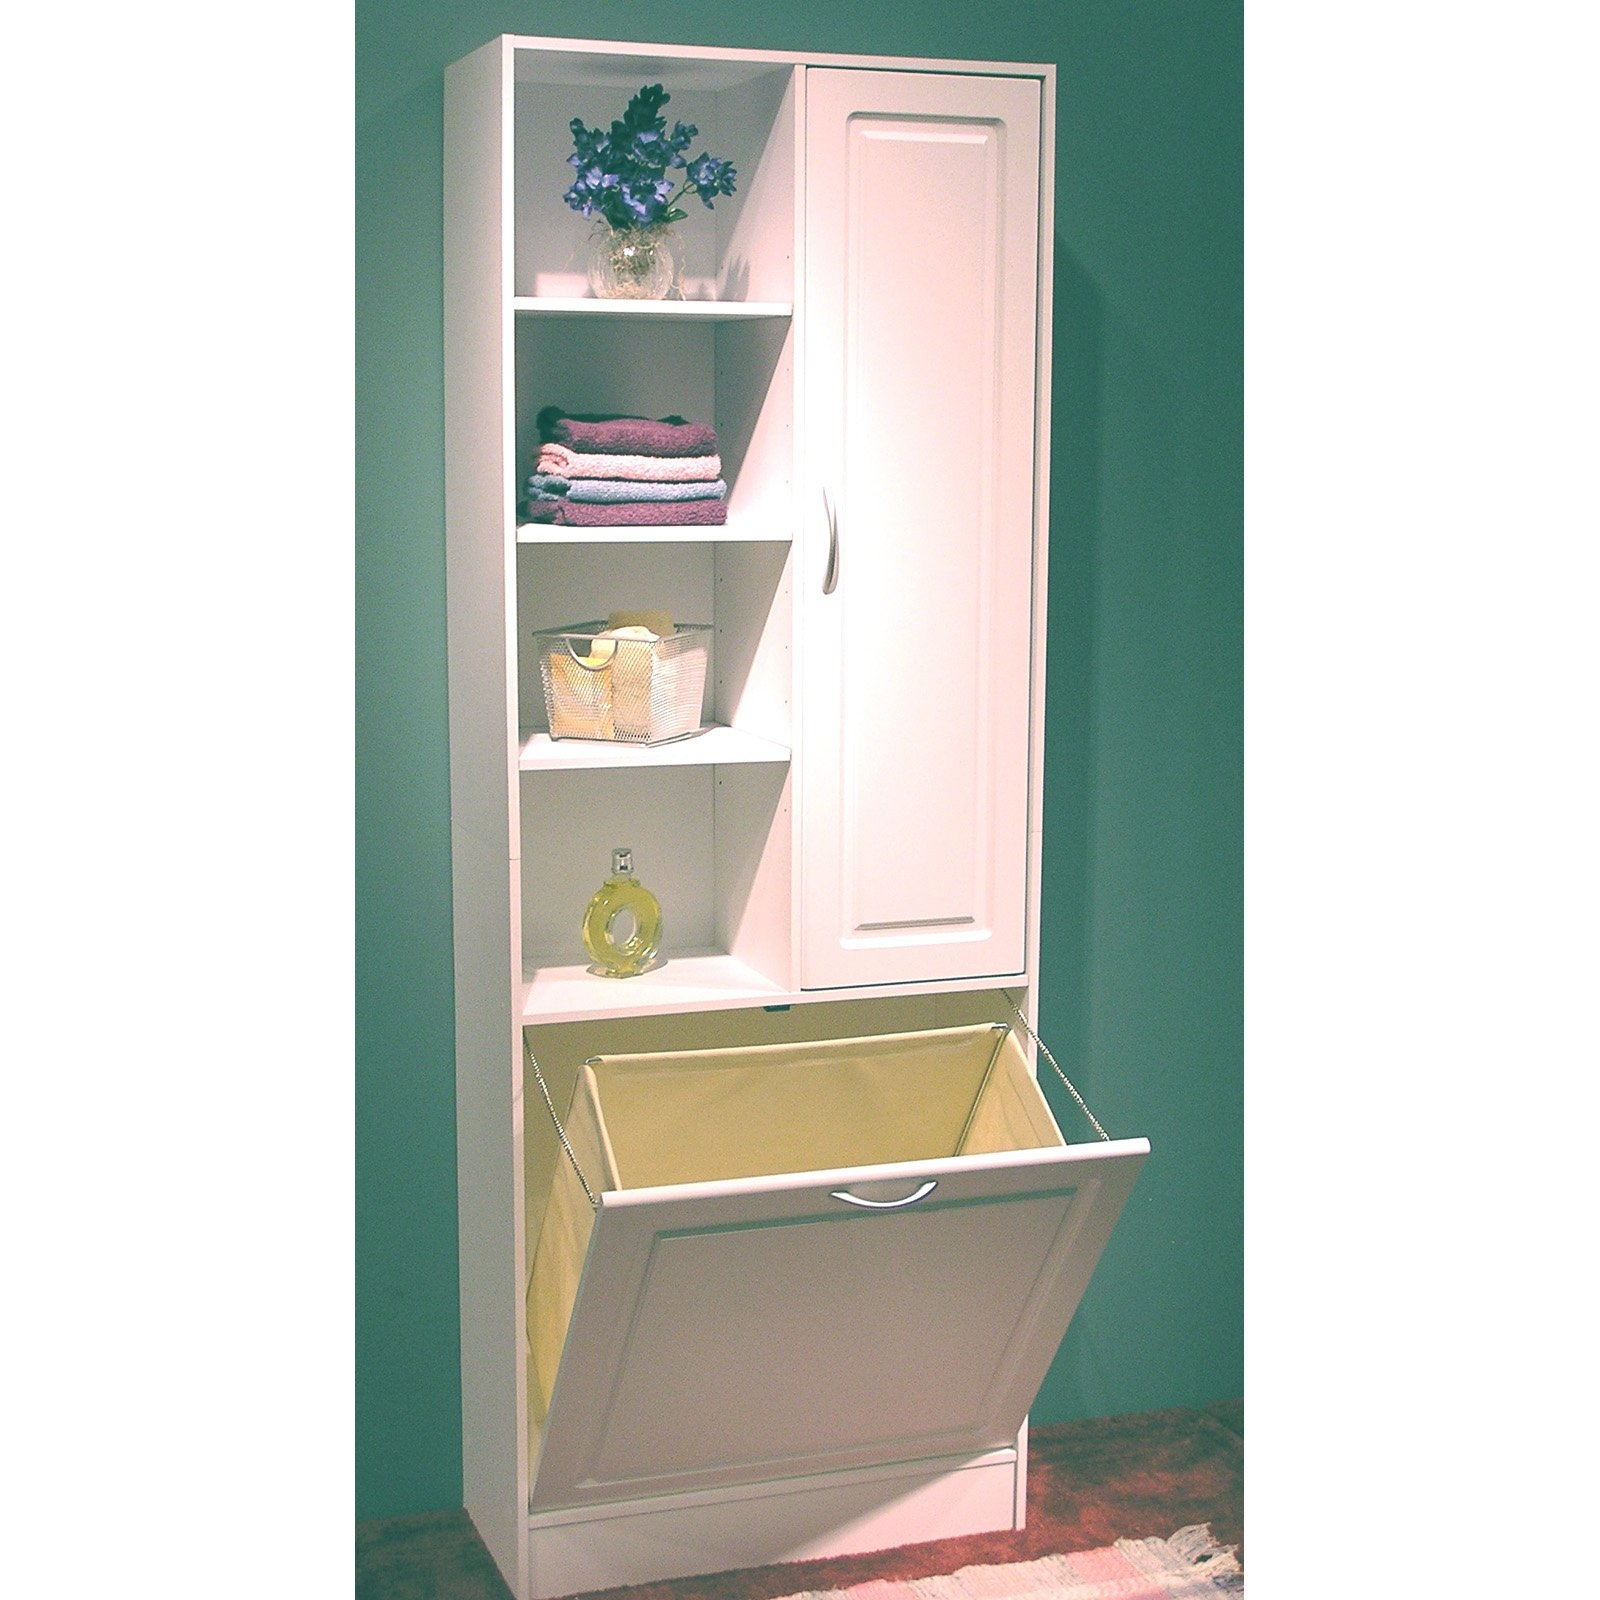 Bathroom Furniture With Laundry Basket